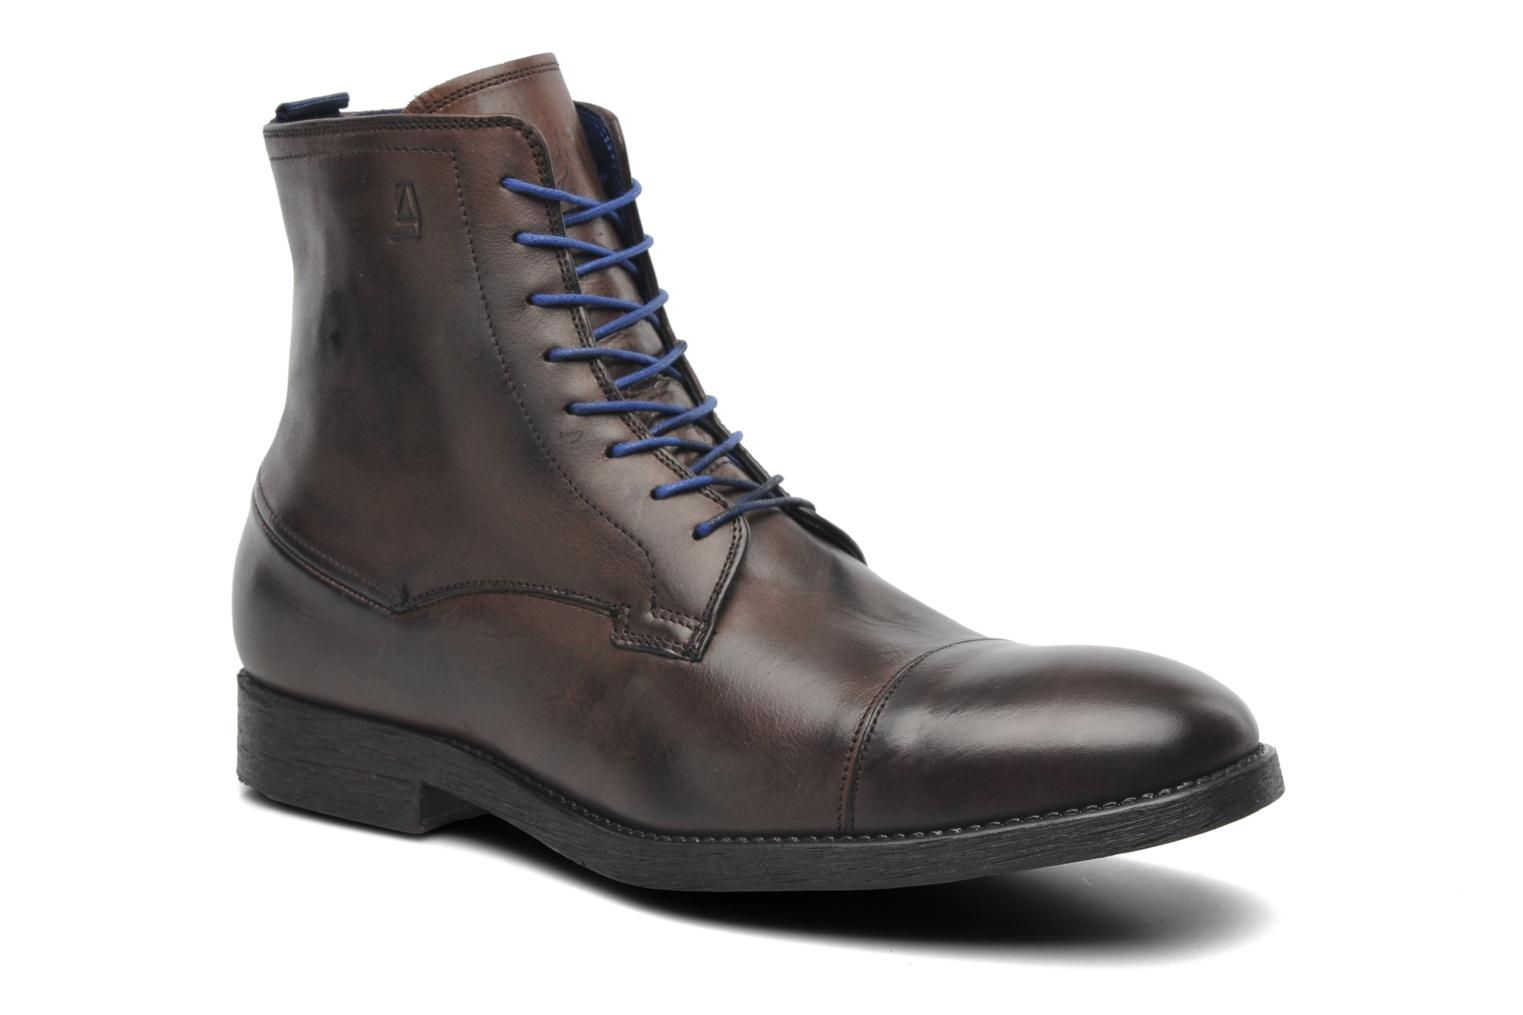 Bottines et boots Azzaro virtuose Marron vue détail/paire